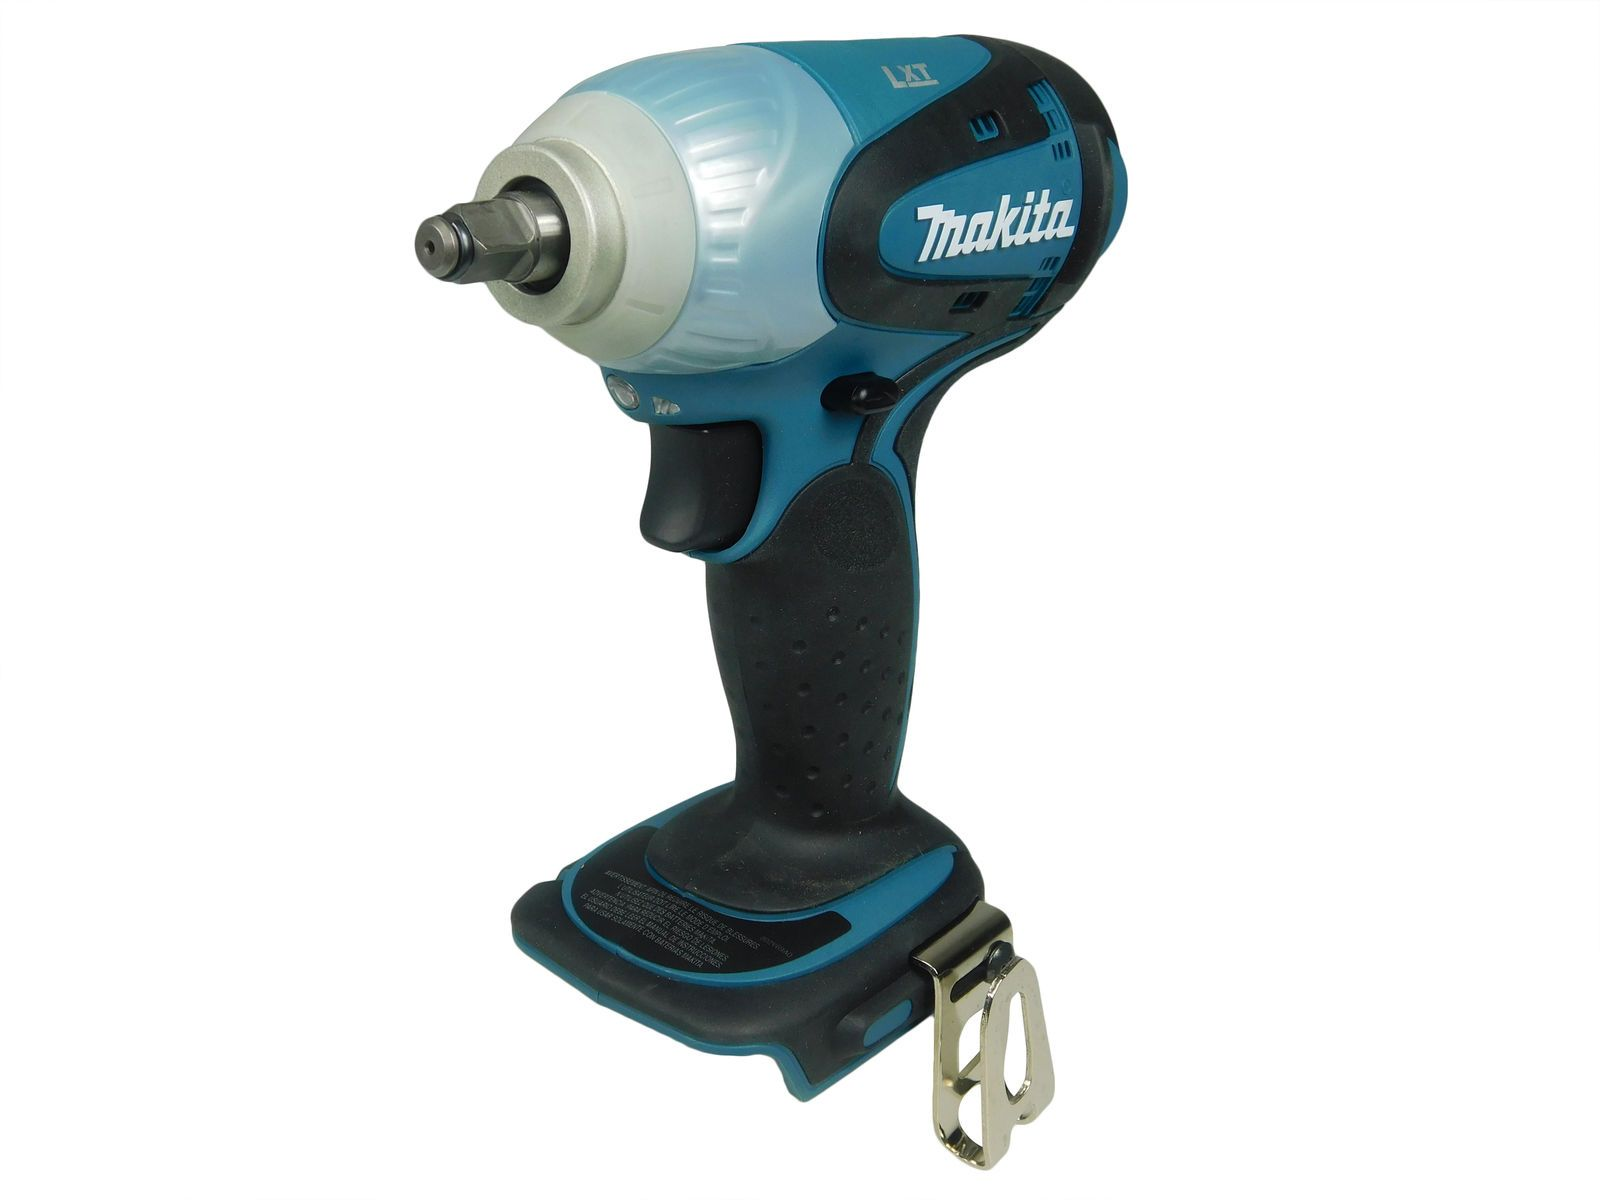 Makita-XWT06Z-18V-Lithium-Ion-Cordless-3-8-Impact-Wrench-Bare-Tool-image-2